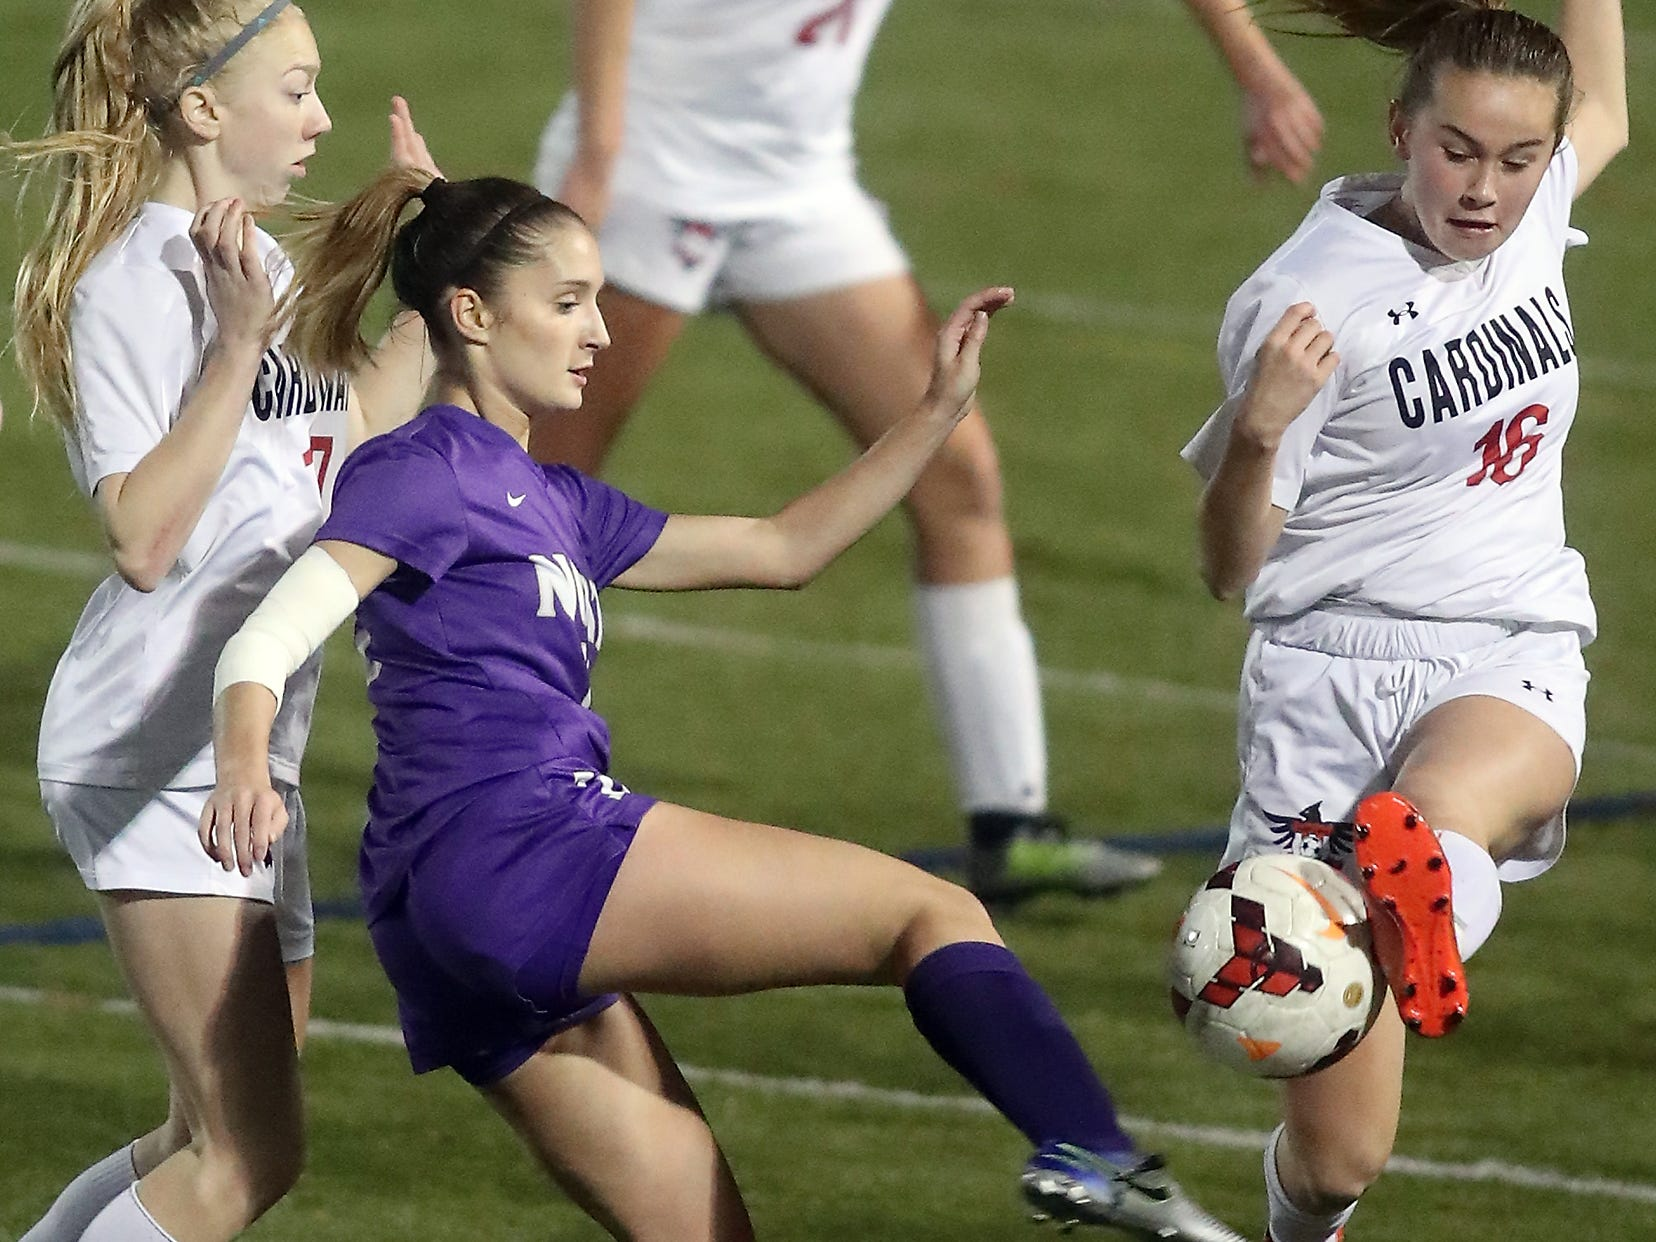 North Kitsap's Emily DeLay (center) battles for control of the ball with vs Orting's Bella Southwell (left) and Jenna Witham (right) in Poulsbo on Tuesday, October 30, 2018.